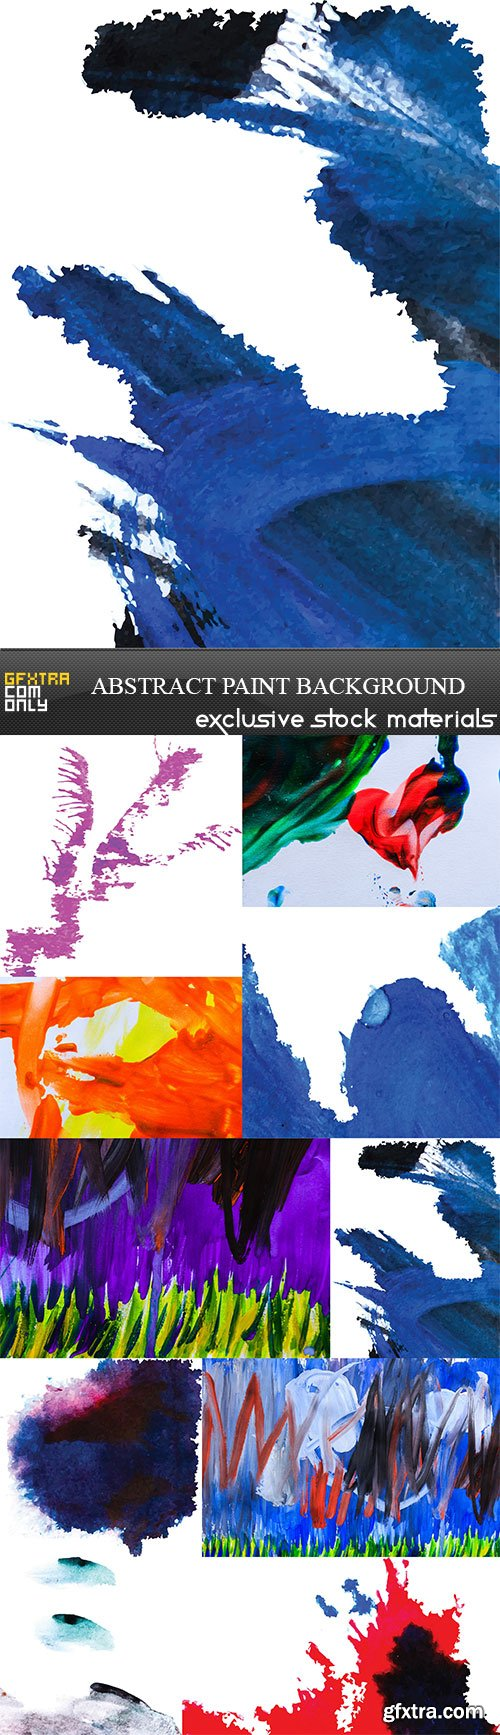 Abstract paint background, 10 x UHQ JPEG